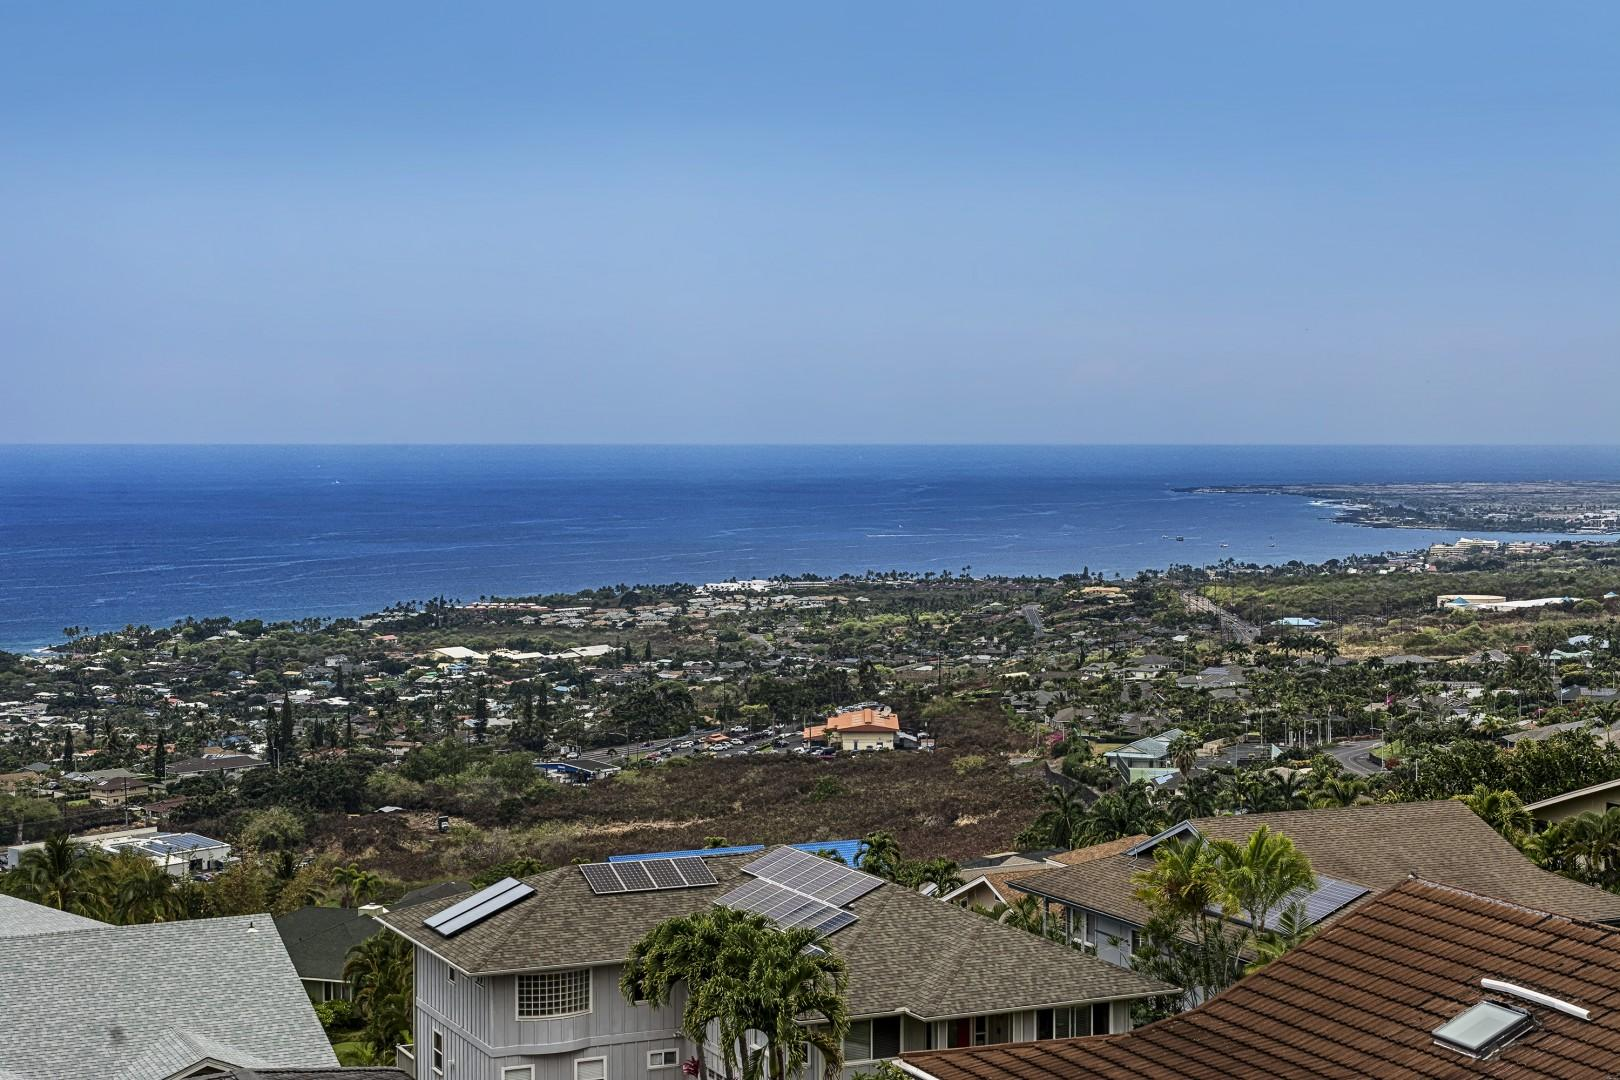 Views from the Lanai looking into downtown Kona